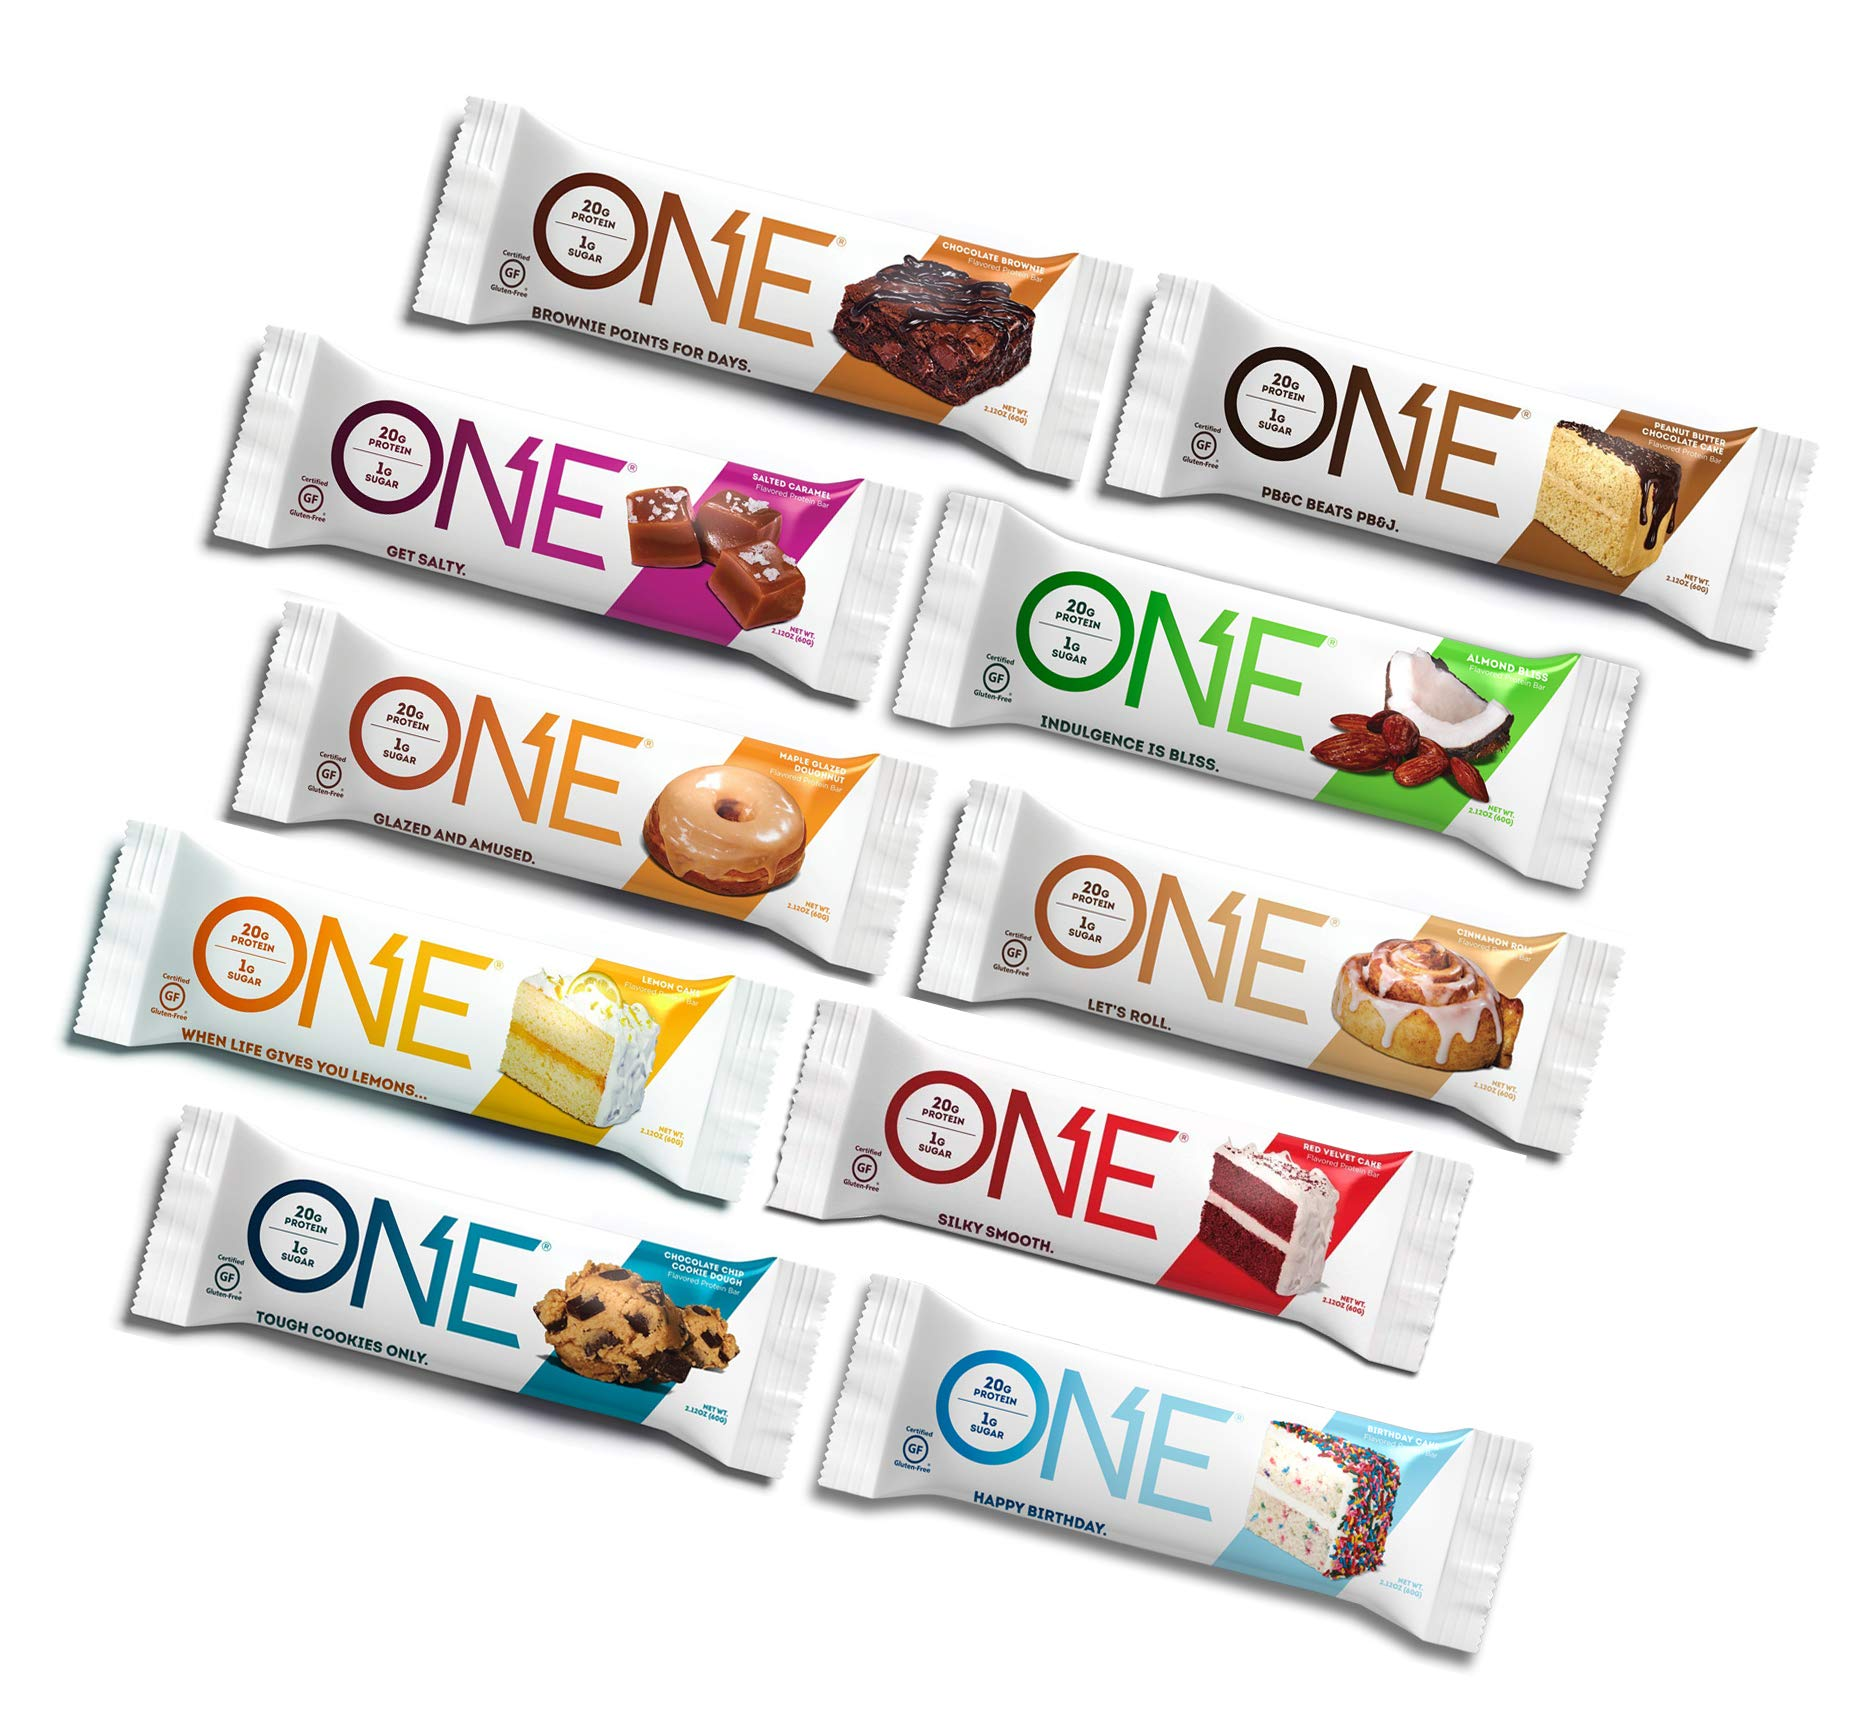 Amazon.com: Oh Yeah! One Protein Bars Chocolate Variety